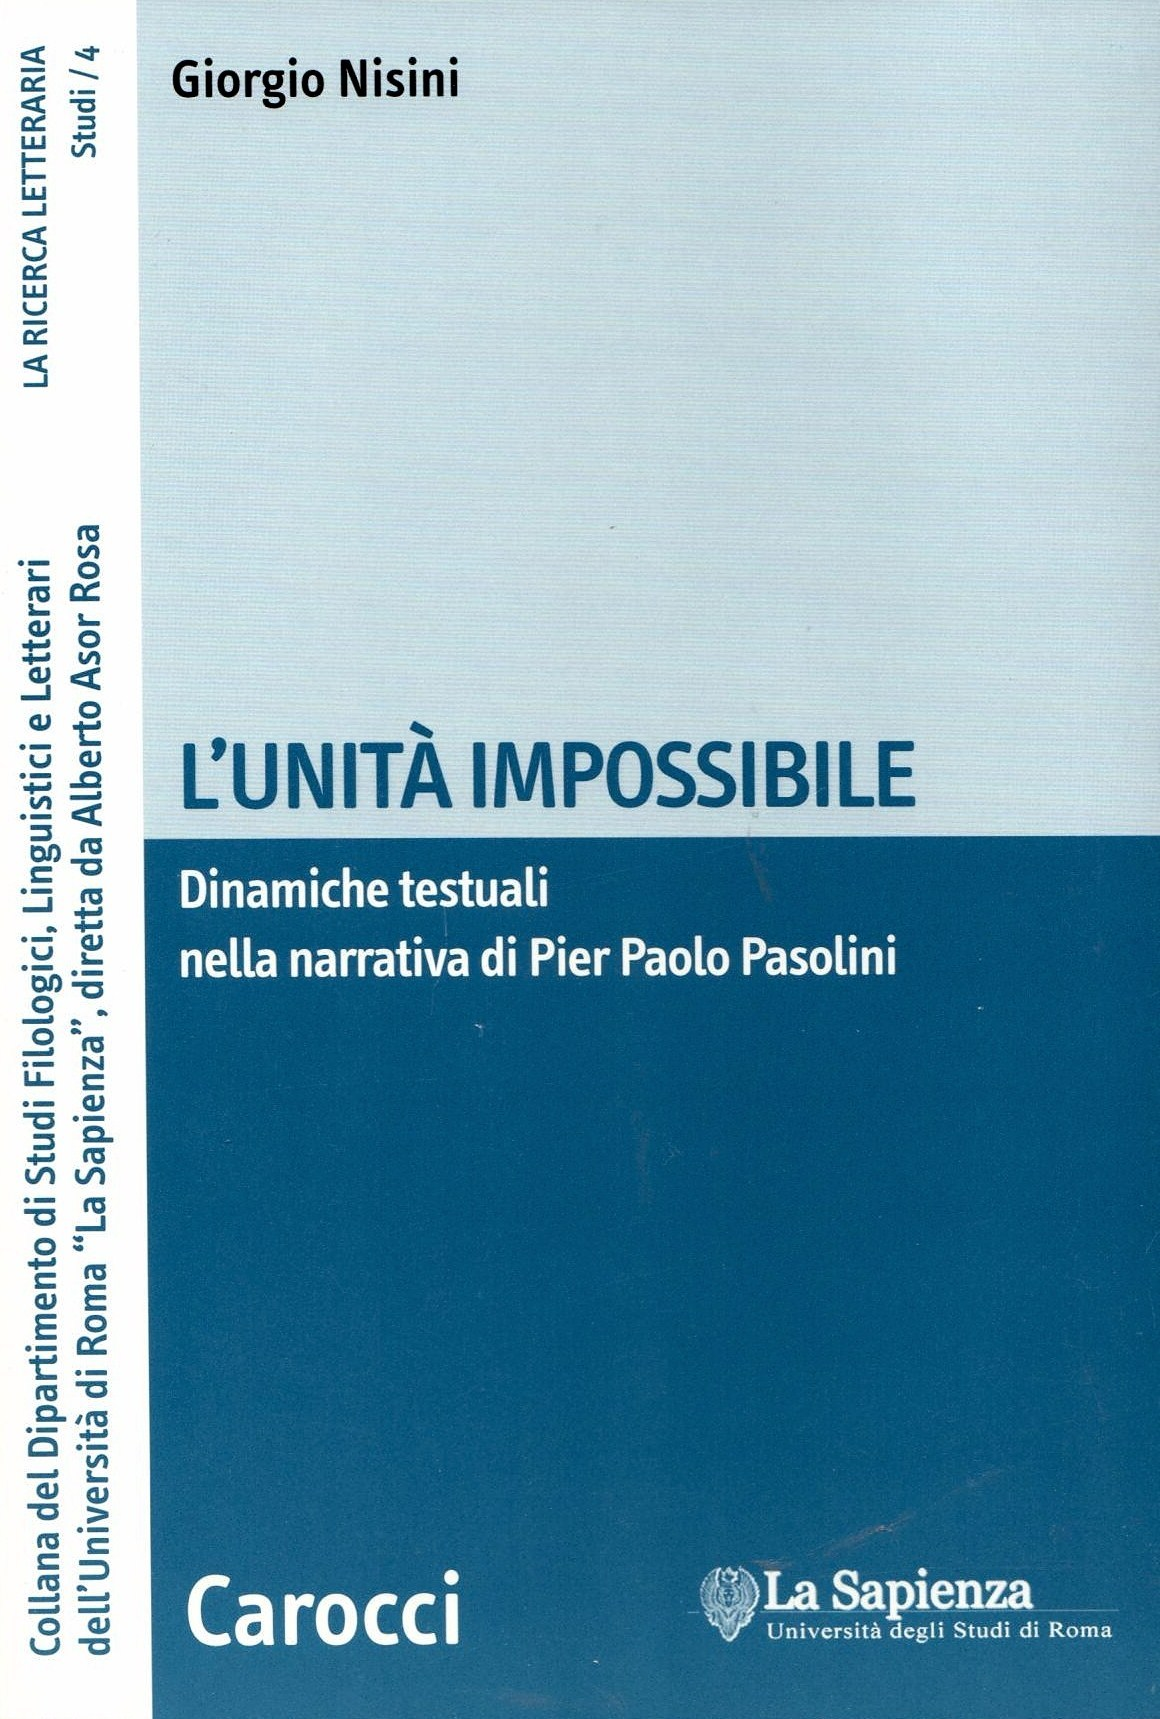 L'unità impossibile